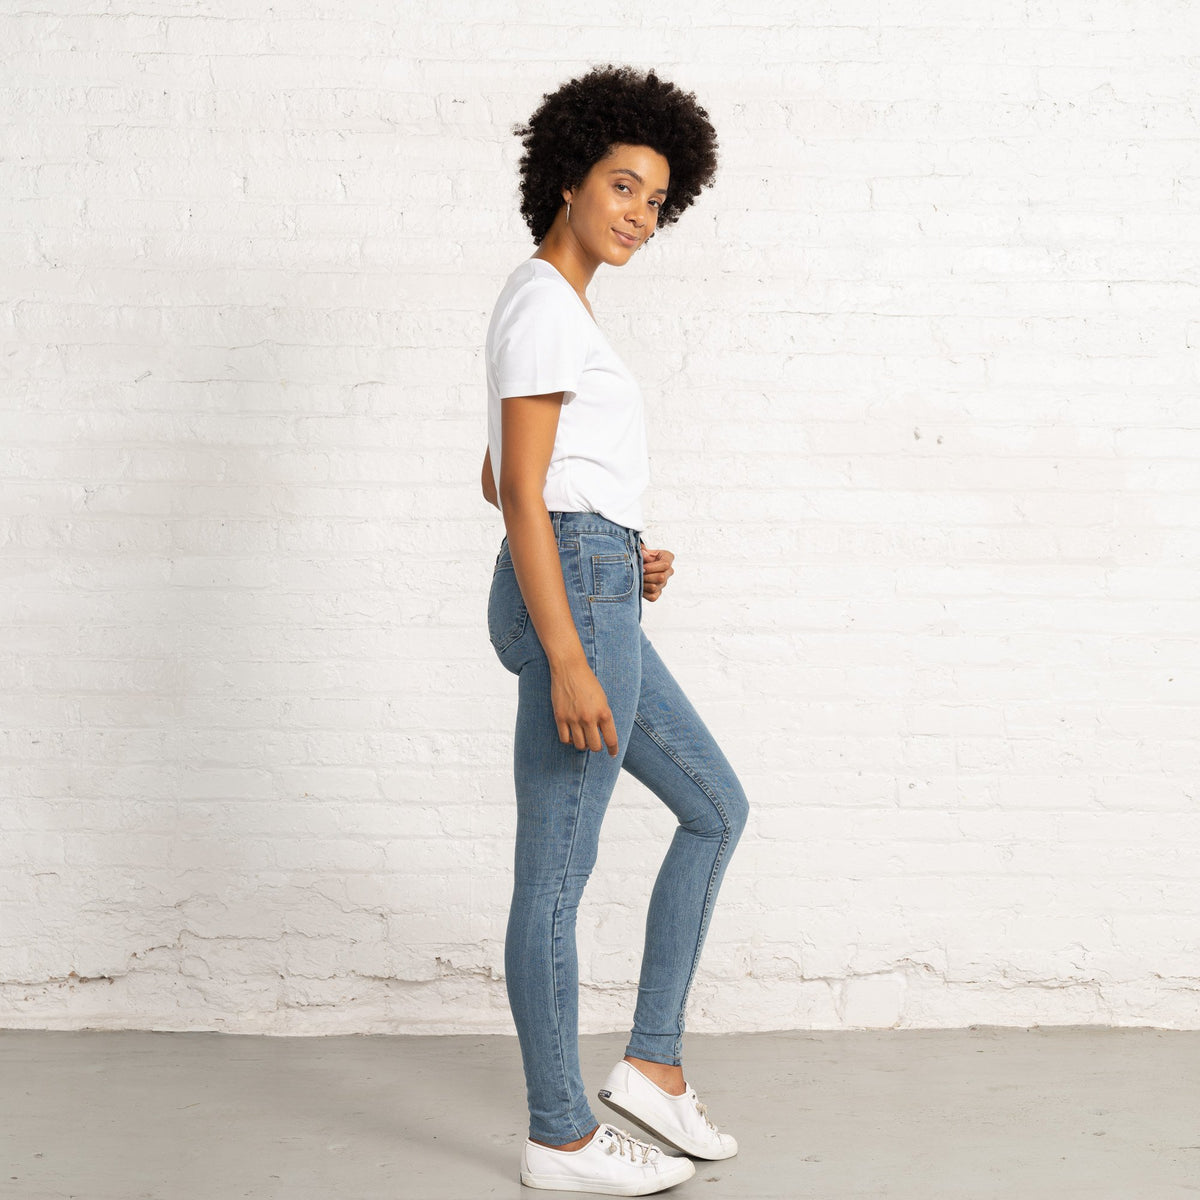 Mary Light Stretch Denim Jeans Women's Jeans